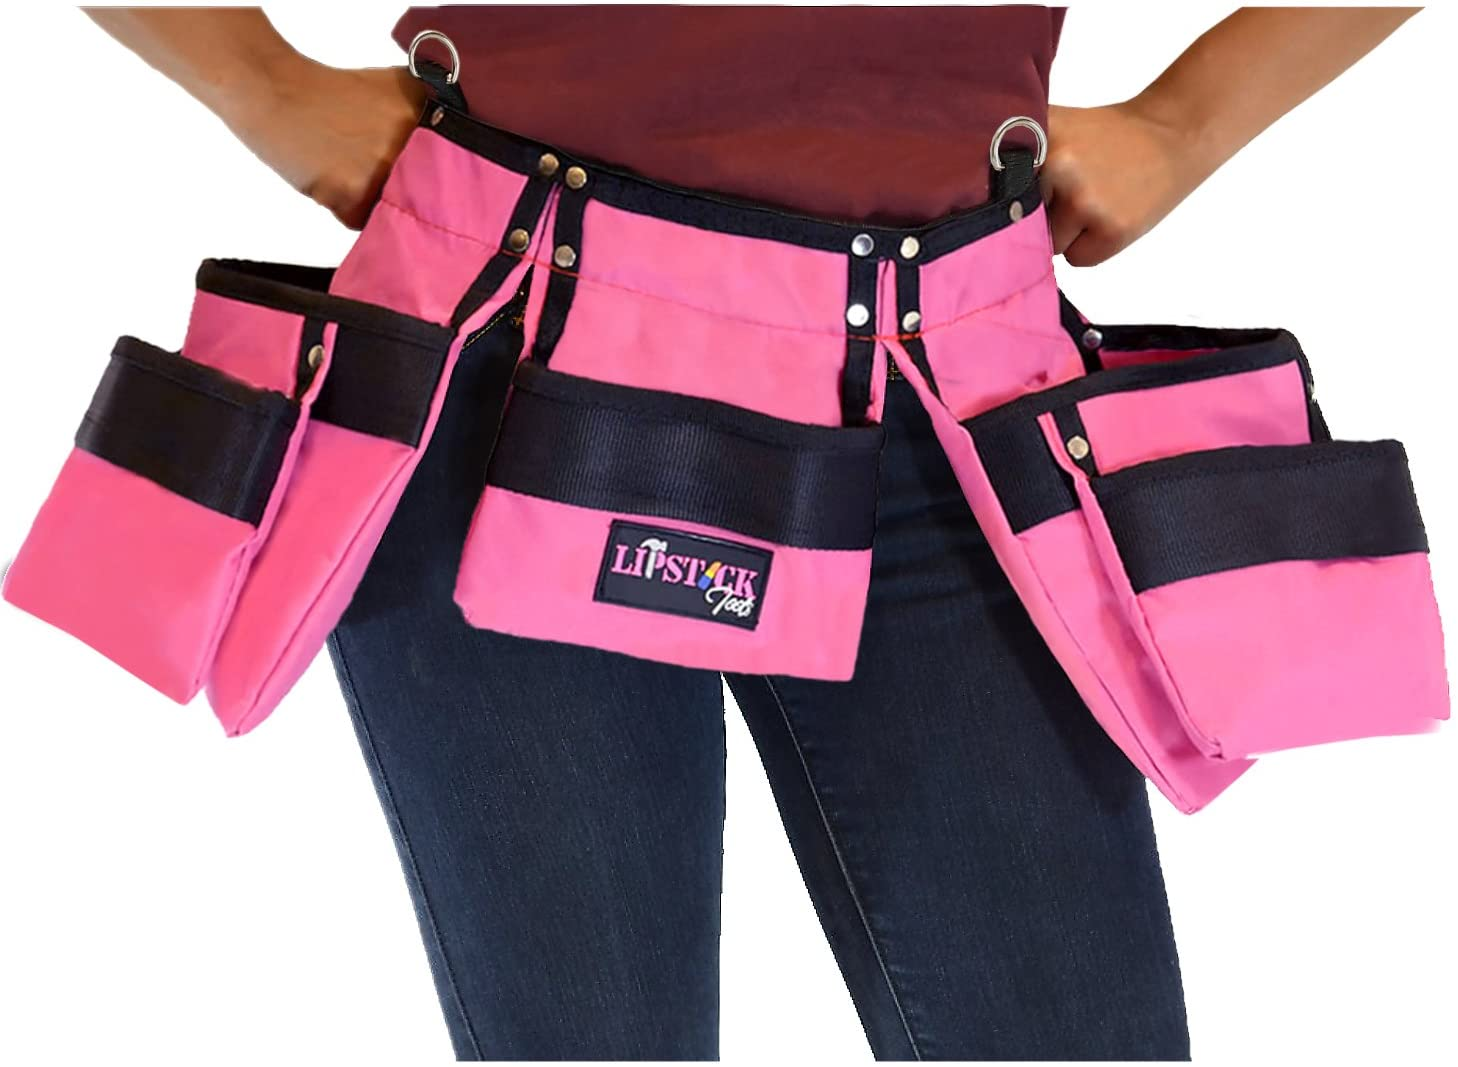 Pink Tool 67% OFF of fixed SEAL limited product price Belt For Women. Keep and Your Improveme Home Gardening